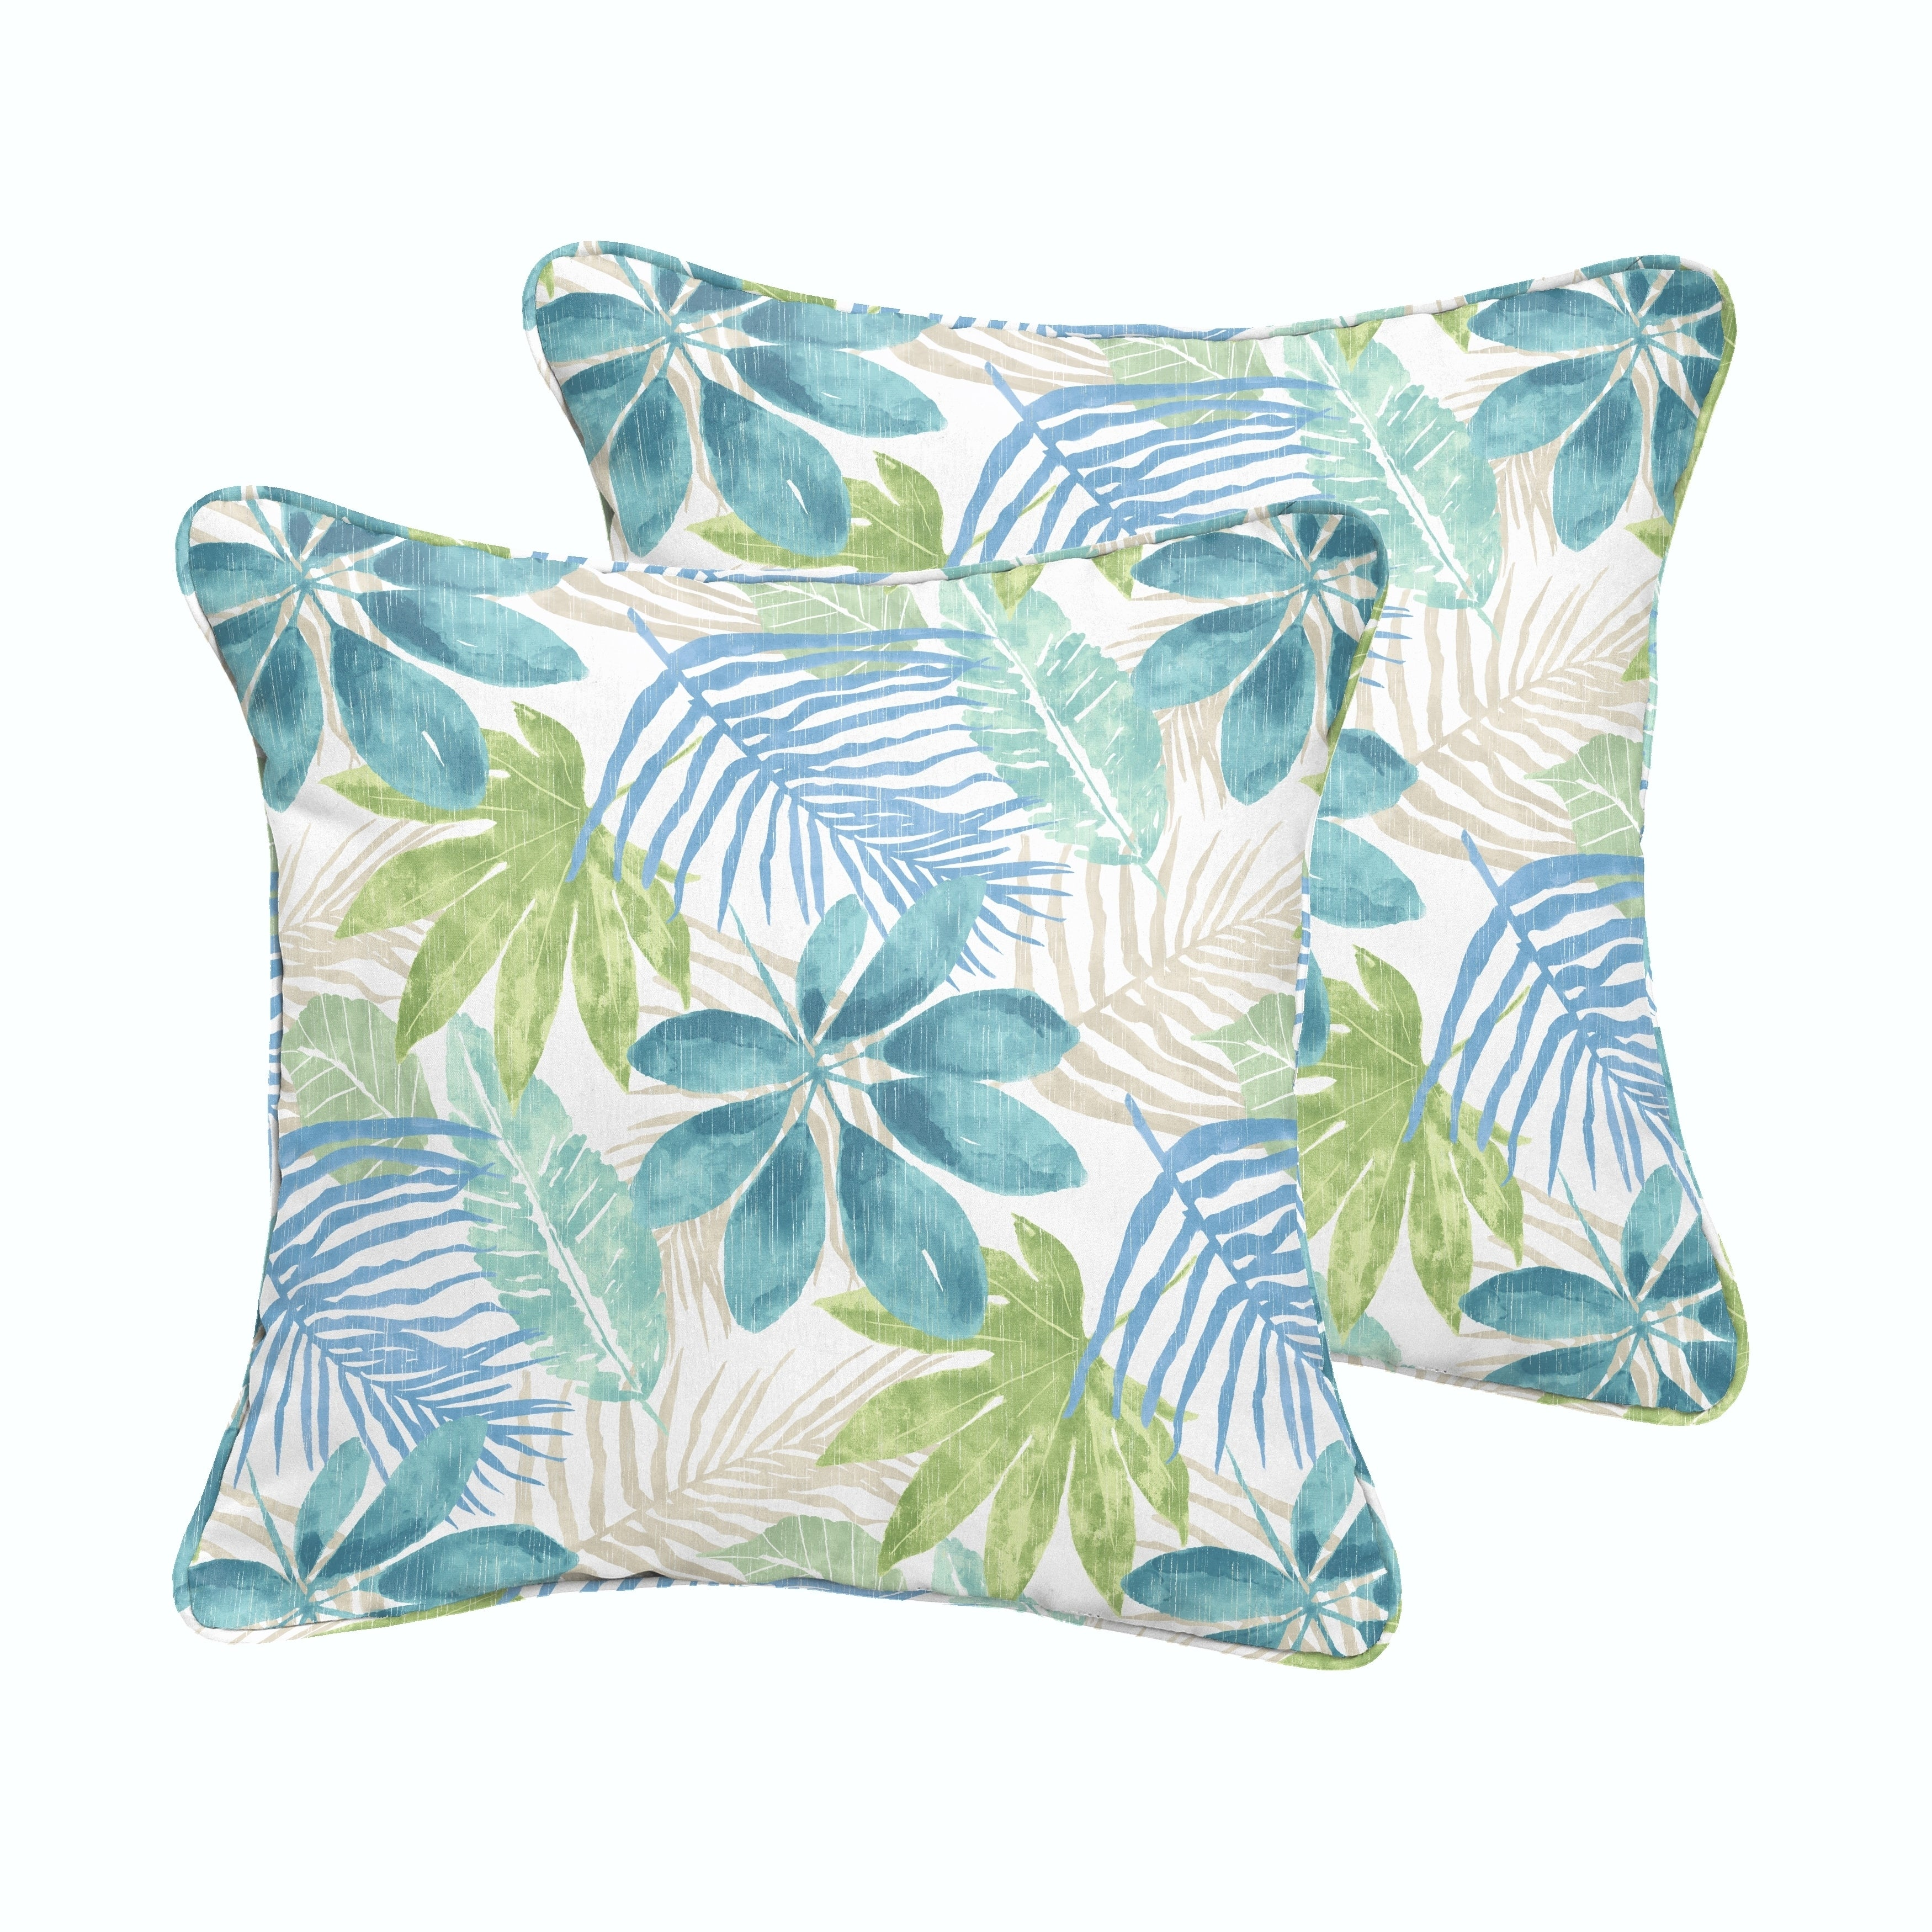 Humble + Haute Indoor/ Outdoor Blue/ Green Tropical Square Pillow, Set of 2 (18 in h x 18 in w)